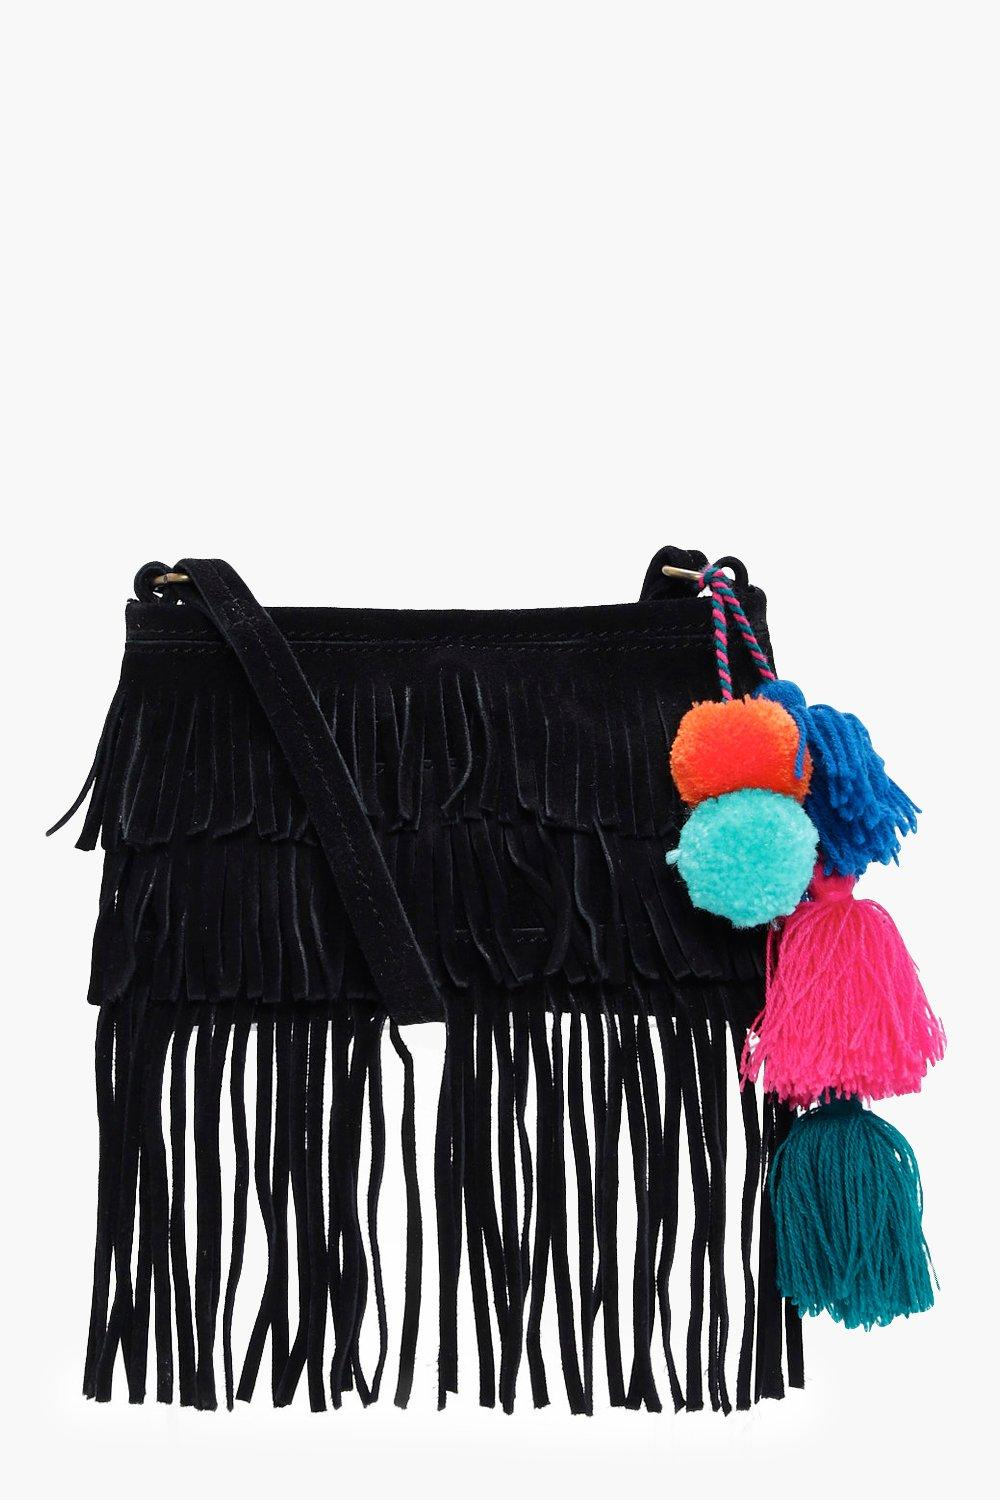 Suede Leather Pom Cross Body Bag - black - Lacey S